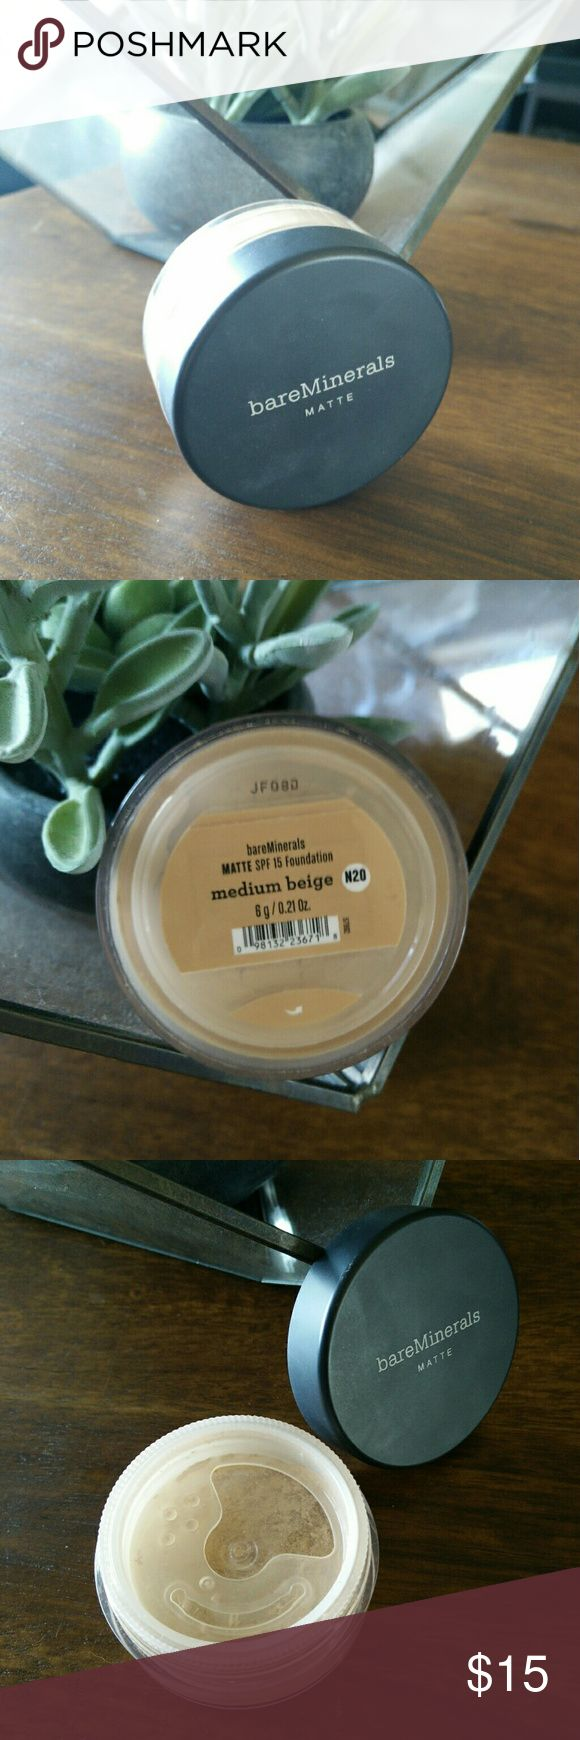 Medium beige matte foundation N20 Only used twice! Great coverage for mineral foundation with an SPF of 15. The matte finish helps control that extra shine from excess oil. Pairs well with mineral veil finishing powder layered over top. bareMinerals Makeup Foundation